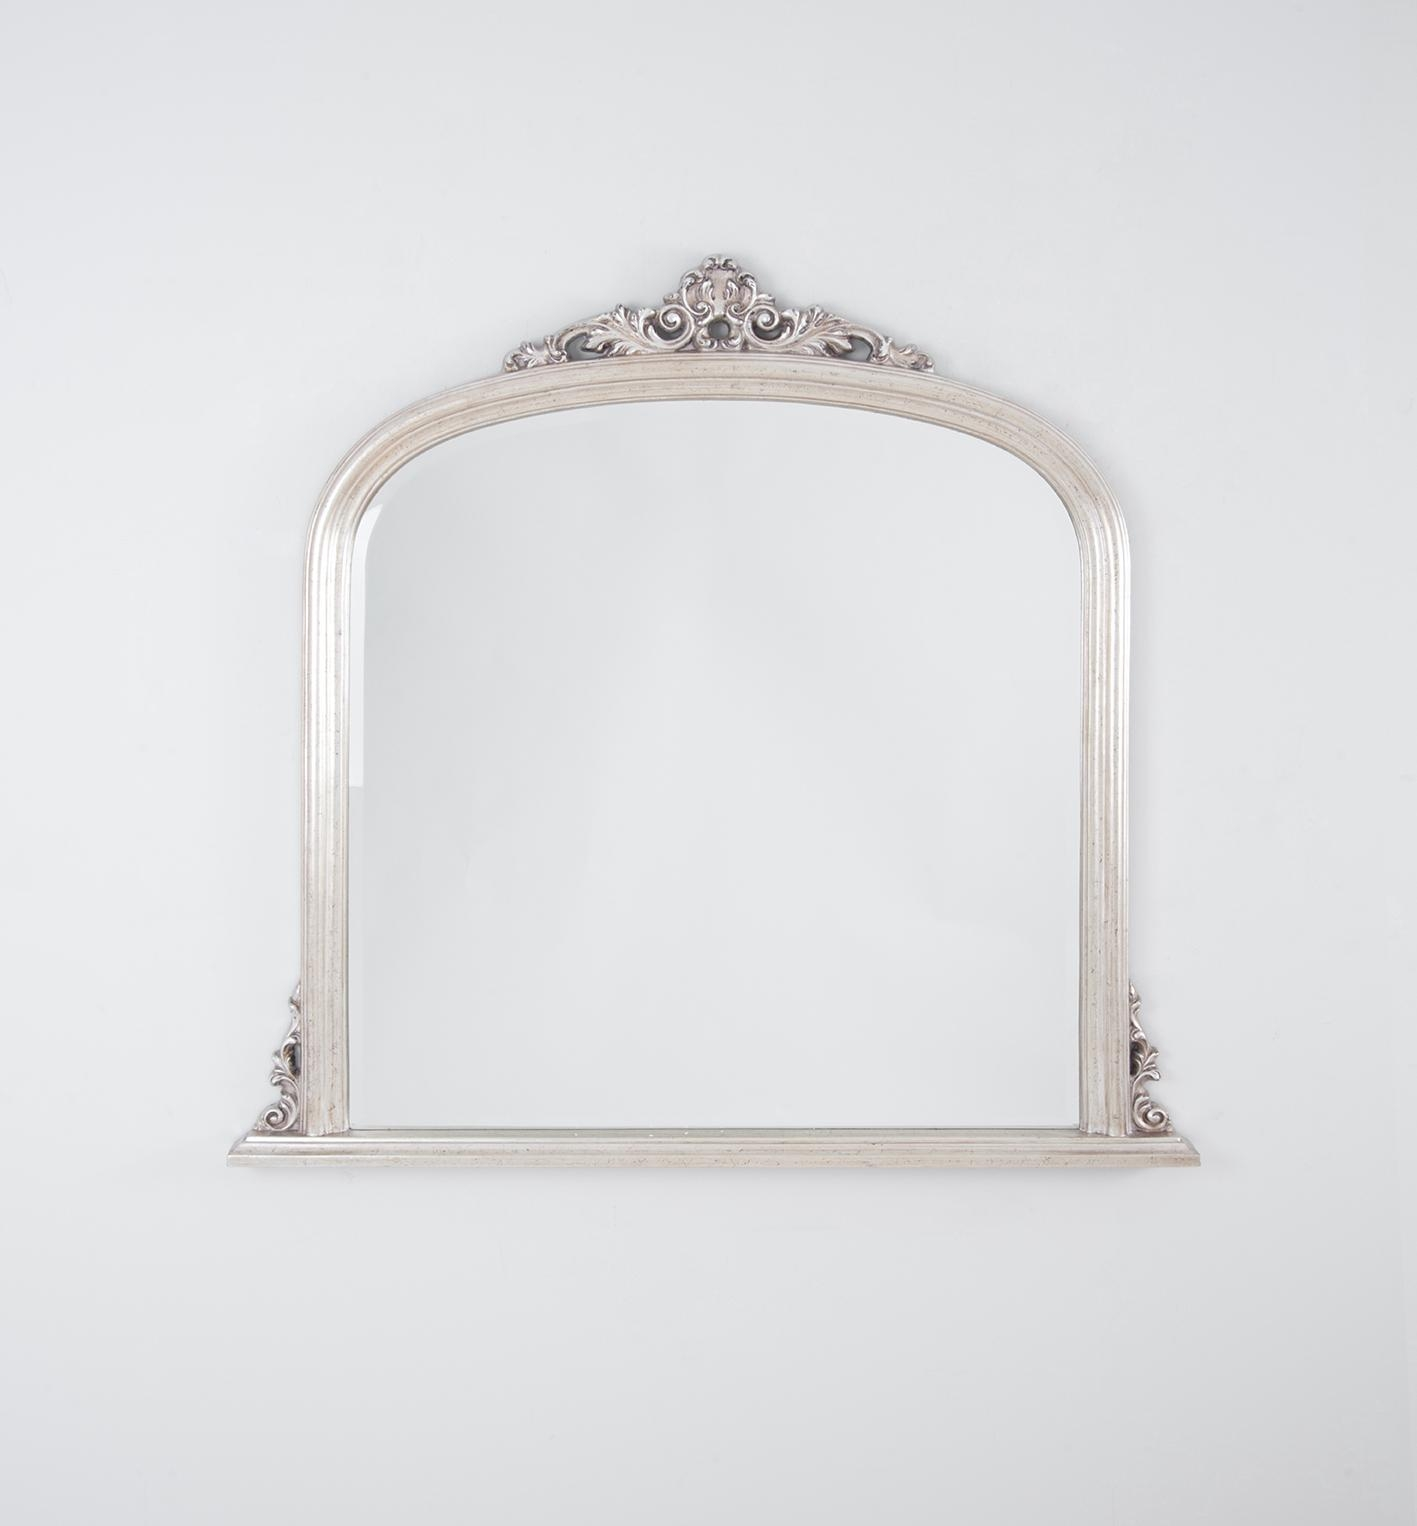 Domed Over Mantle Mirror | Warm Silver | The Block Shop Inside Mantle Mirror (Image 14 of 20)